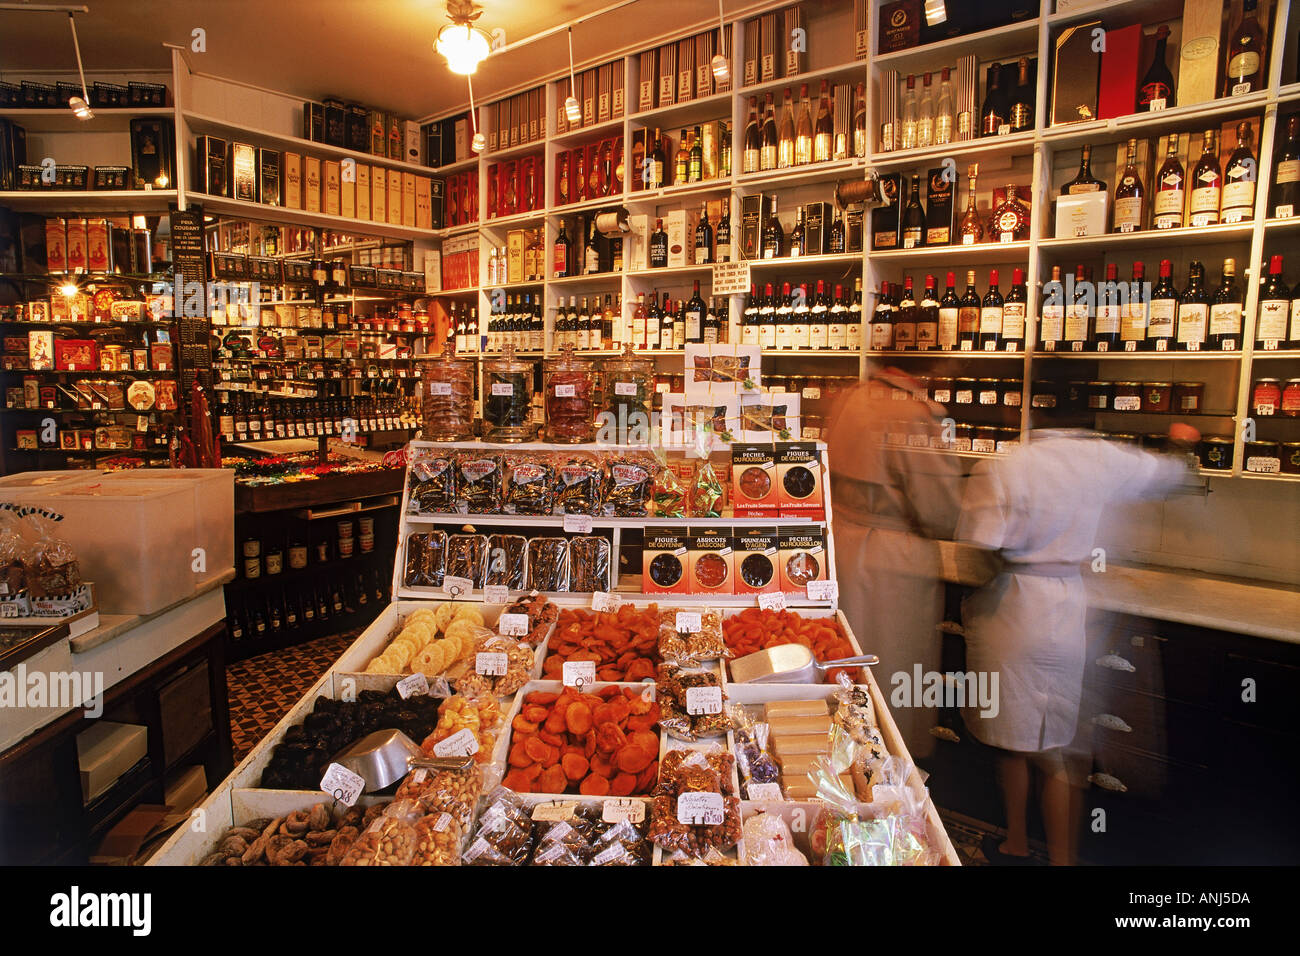 inside small epicerie or delicatessen in paris stock photo royalty free image 2876889 alamy. Black Bedroom Furniture Sets. Home Design Ideas